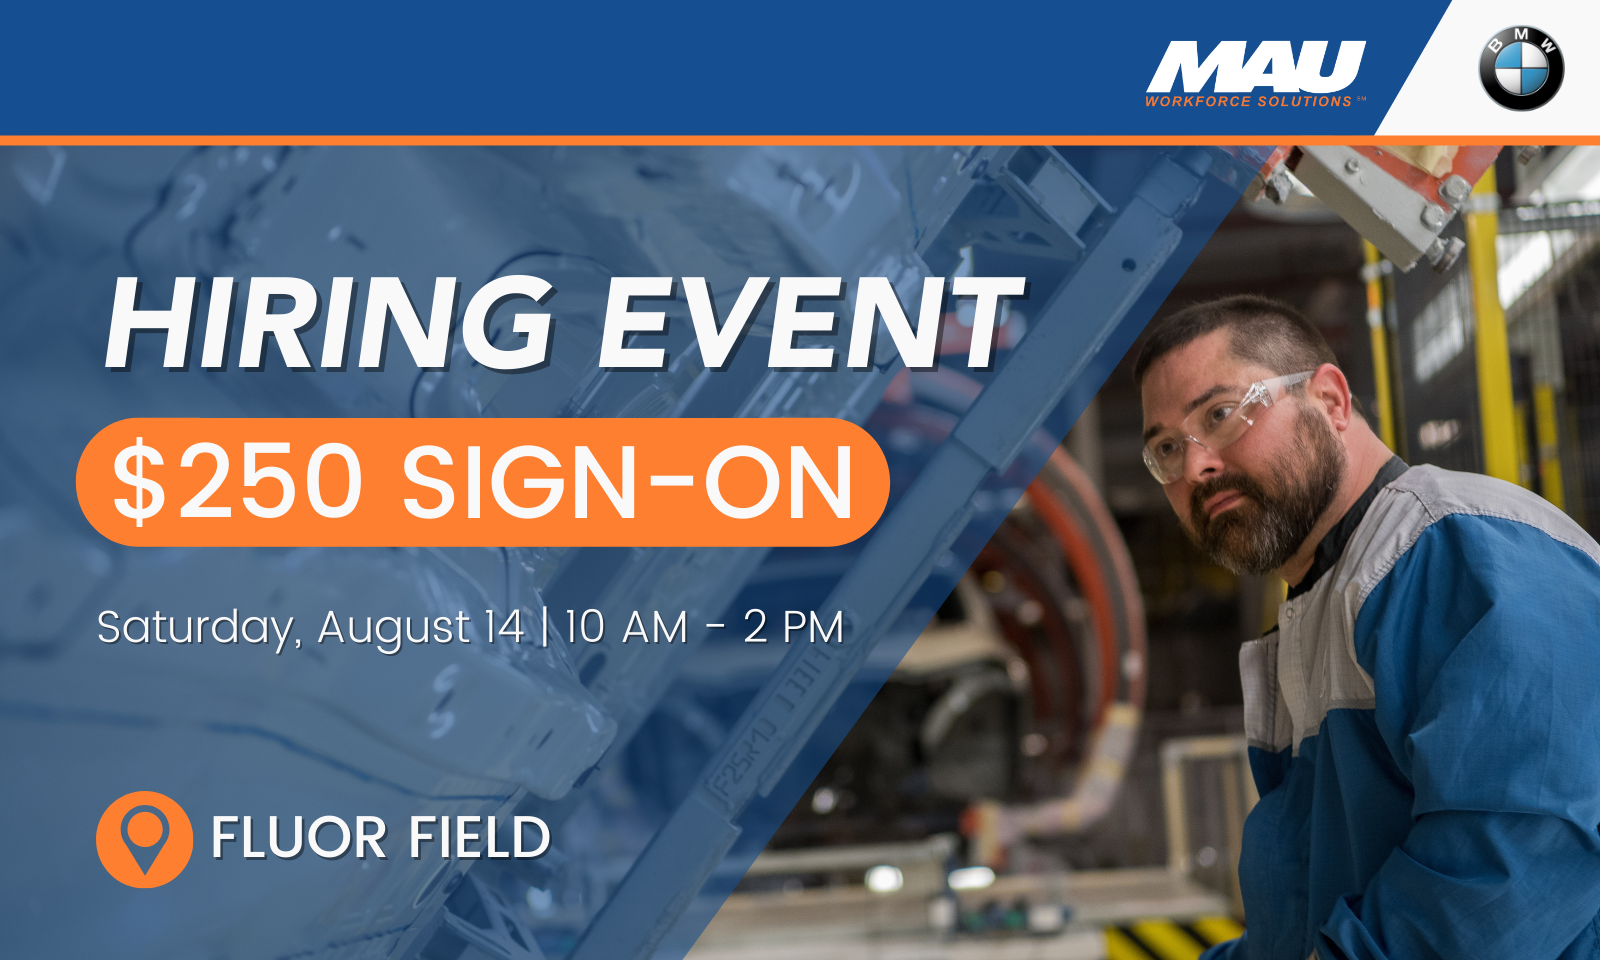 MAU at BMW August 14 Hiring Event